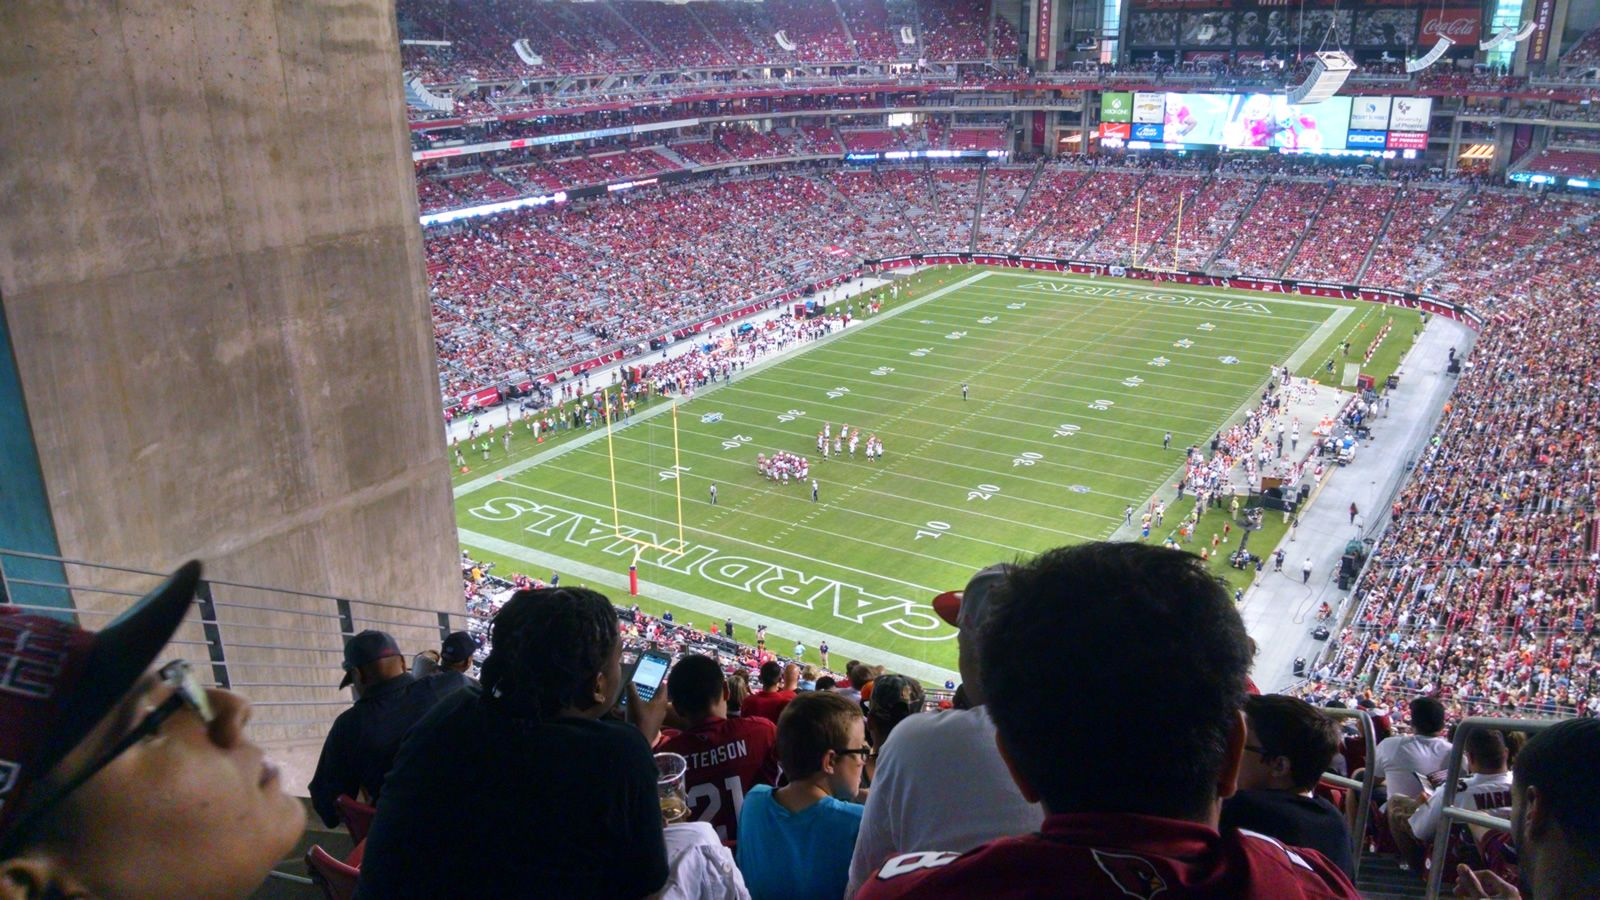 Arizona Cardinals Seat View for University of Phoenix Stadium Section 455, Row 16, Seat 2